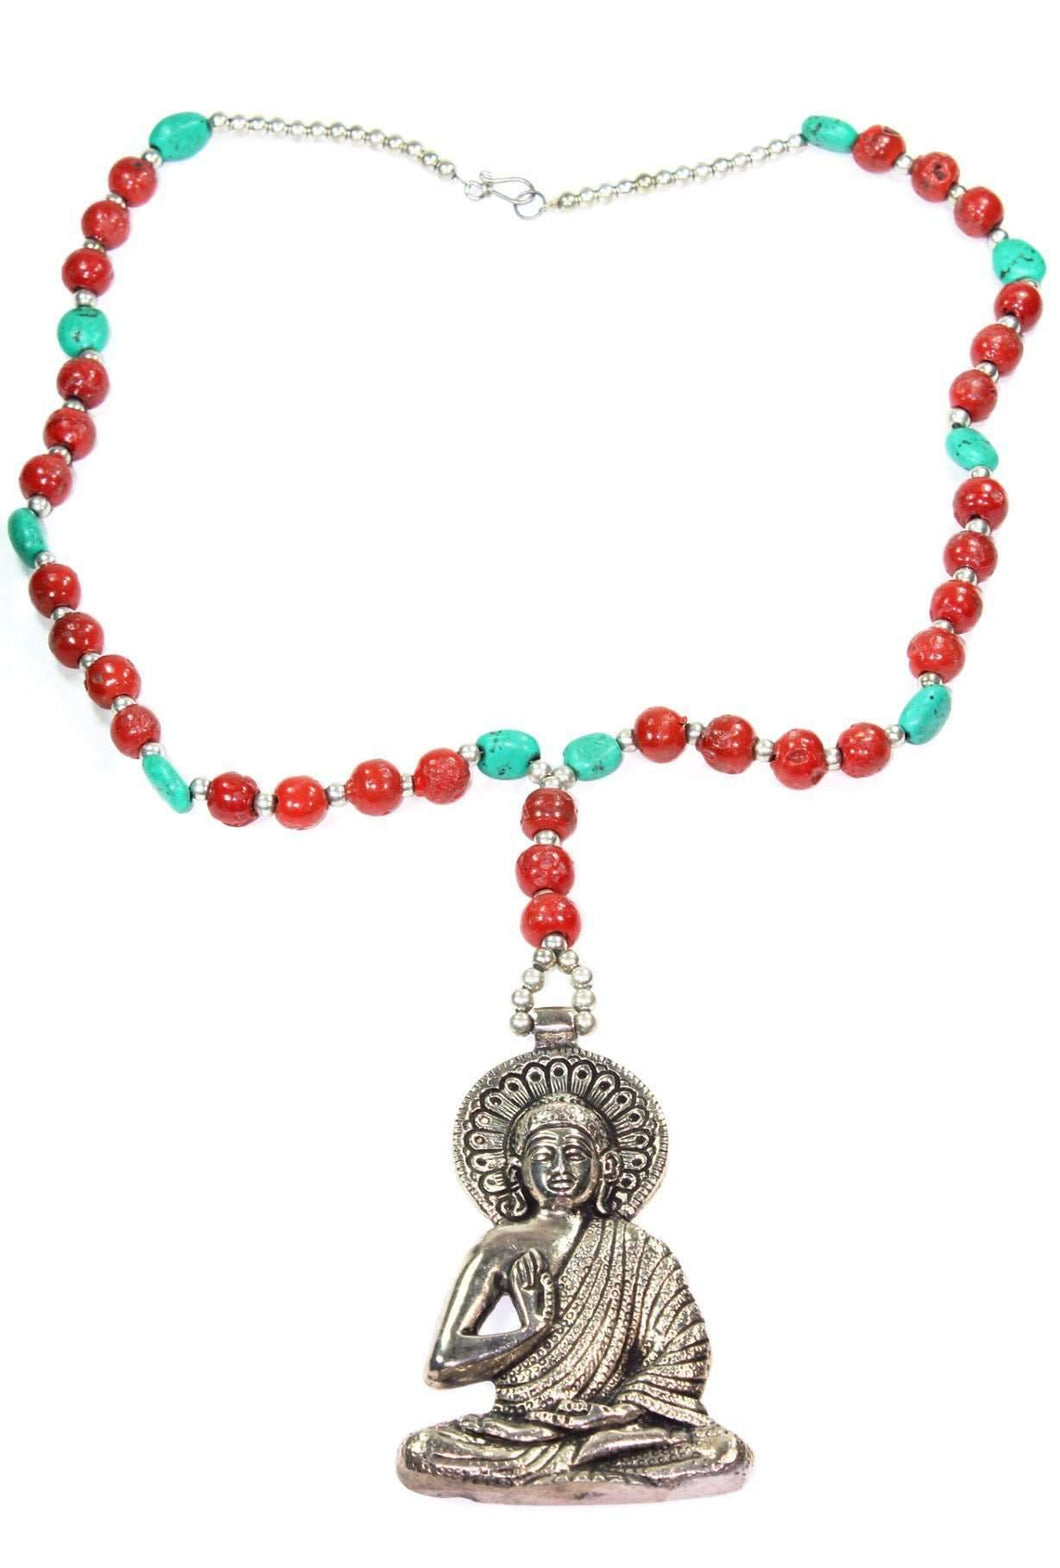 Red & Turquoise Grand Buddha Pendant Necklace